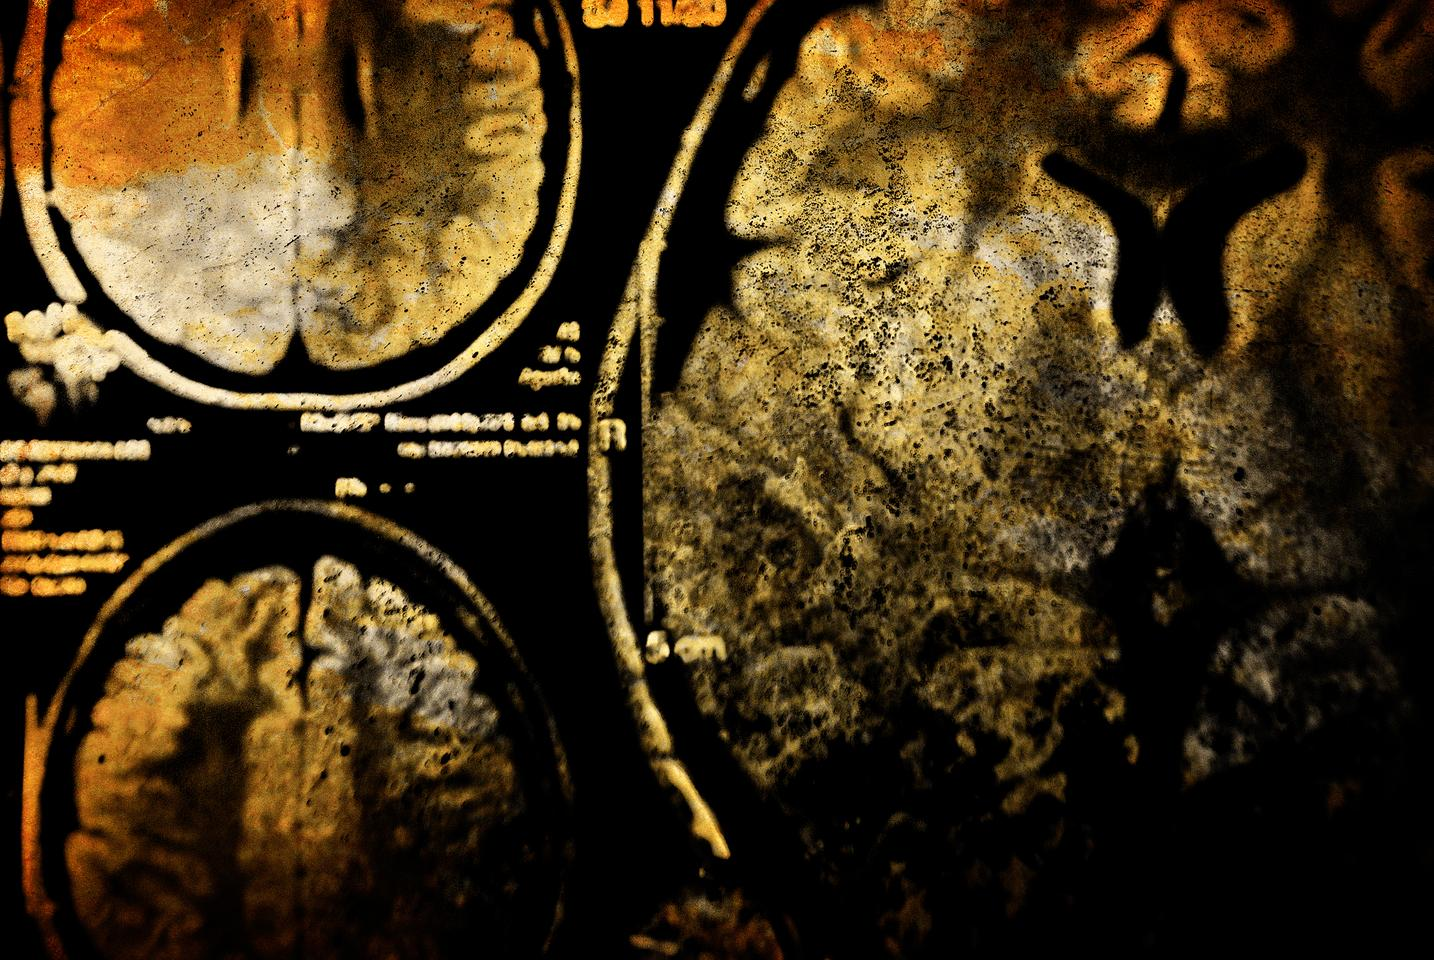 A new study has uncovered how brain injury can be worsened by bacteria in the gut